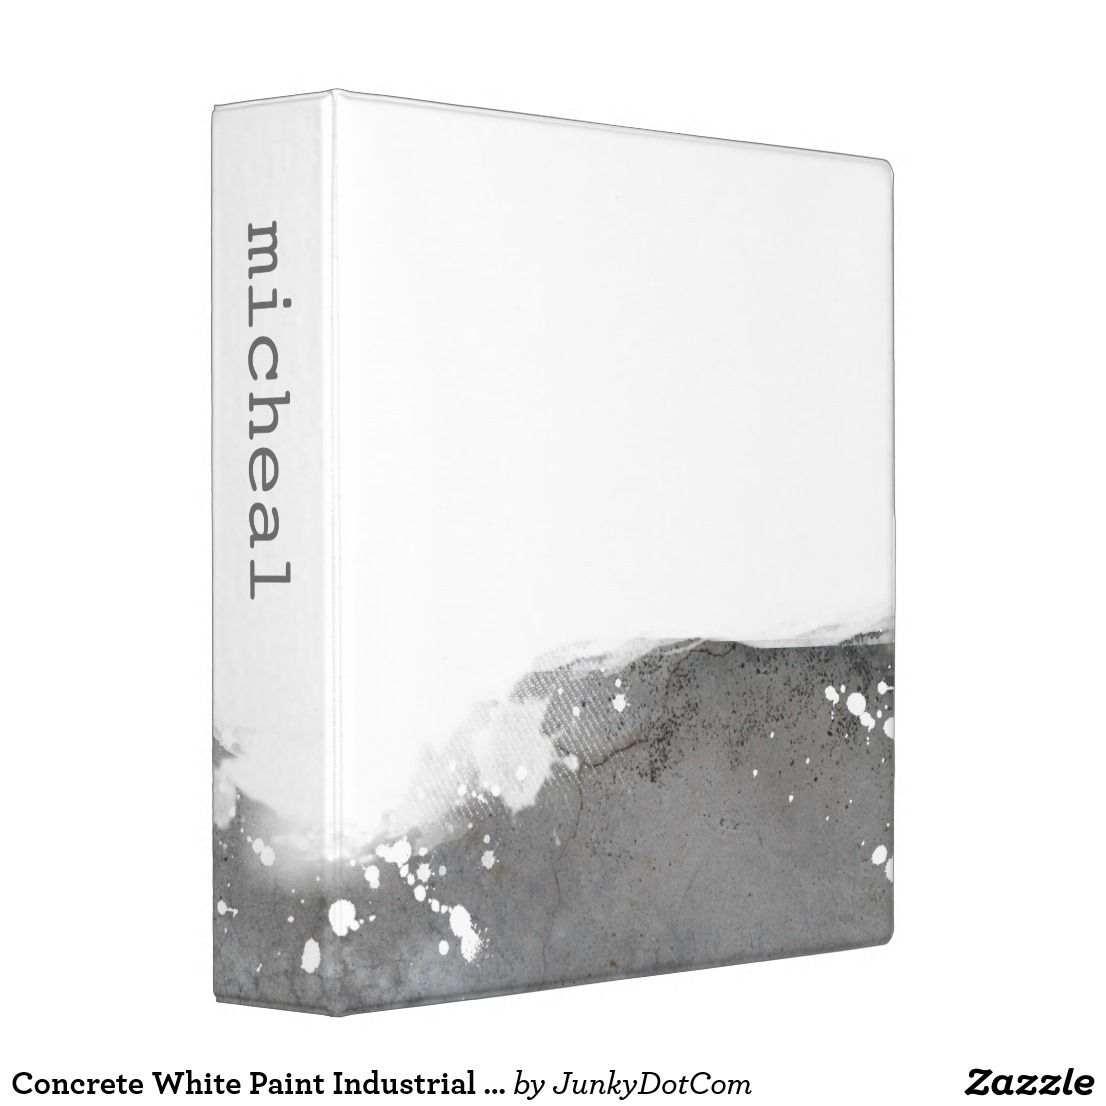 Concrete White Paint Industrial Design 3 Ring Binder Aug 4 2017